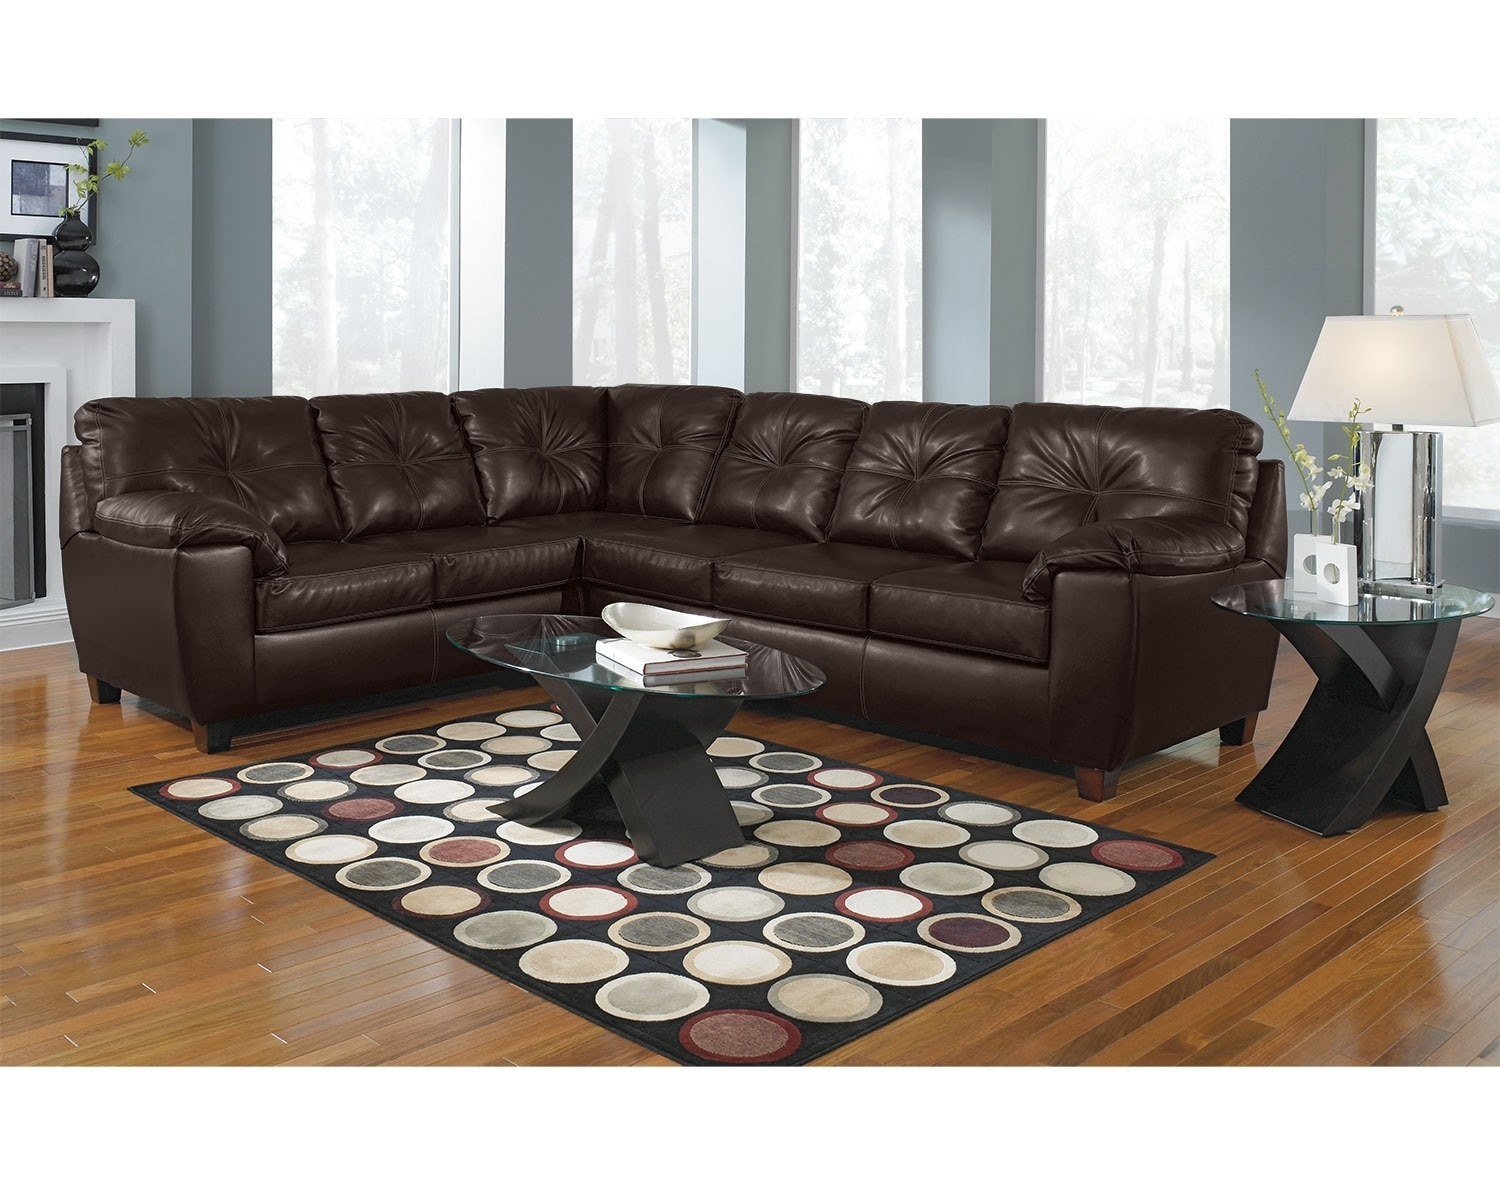 Factory Outlet Home Furniture American Signature Furniture Inside Closeout Sectional Sofas (View 13 of 15)